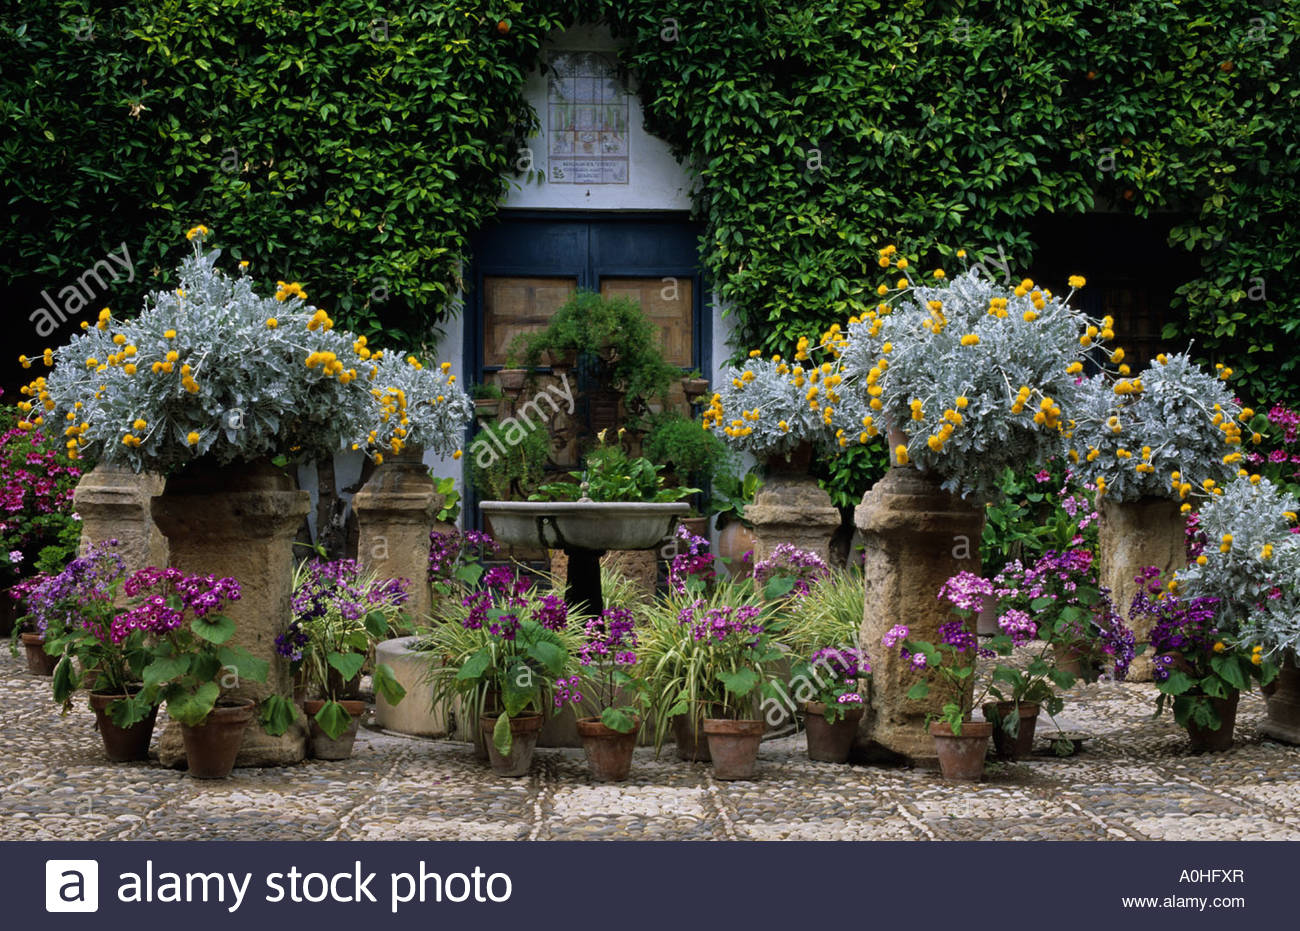 Cordoba Patio Garden Festival. Spain. The Viana Palace. The Grille  Courtyard With Pots, Containers And Water Fountain.